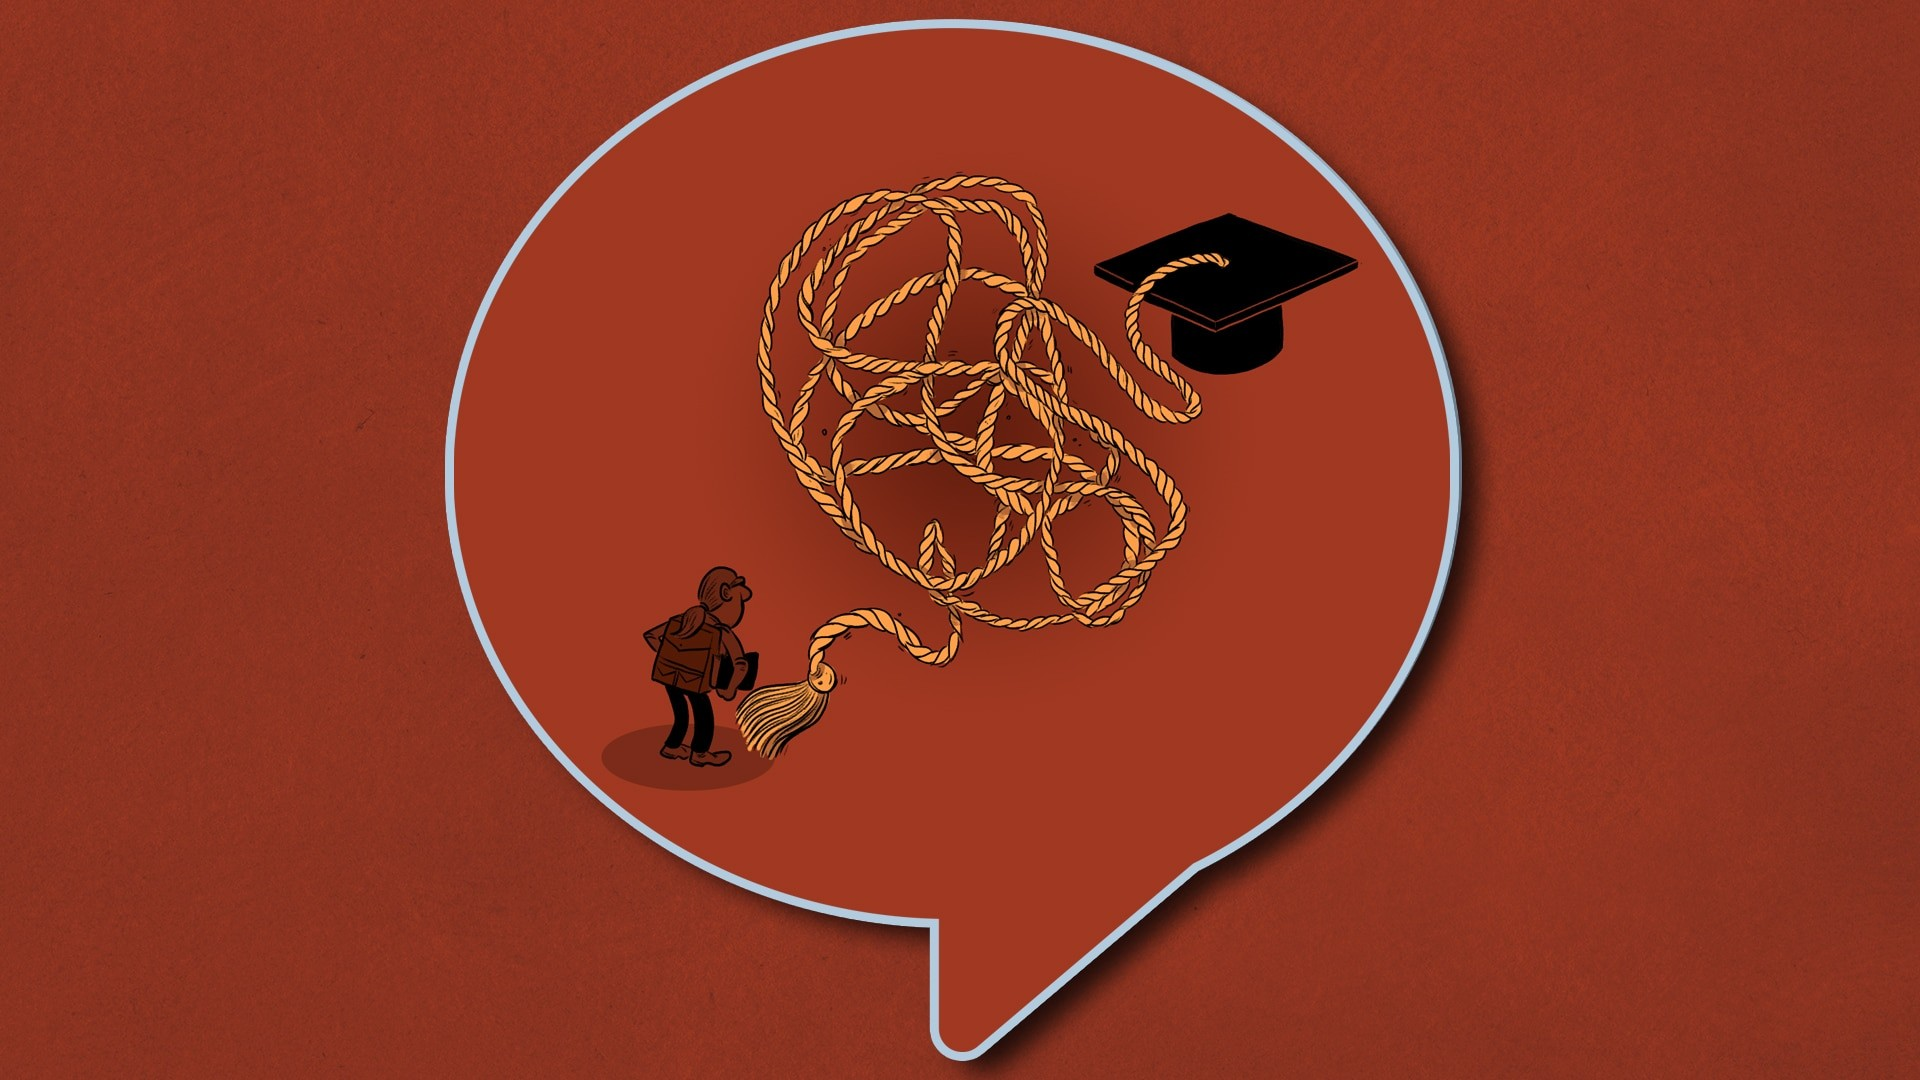 illustration of man chasing after graduation hat